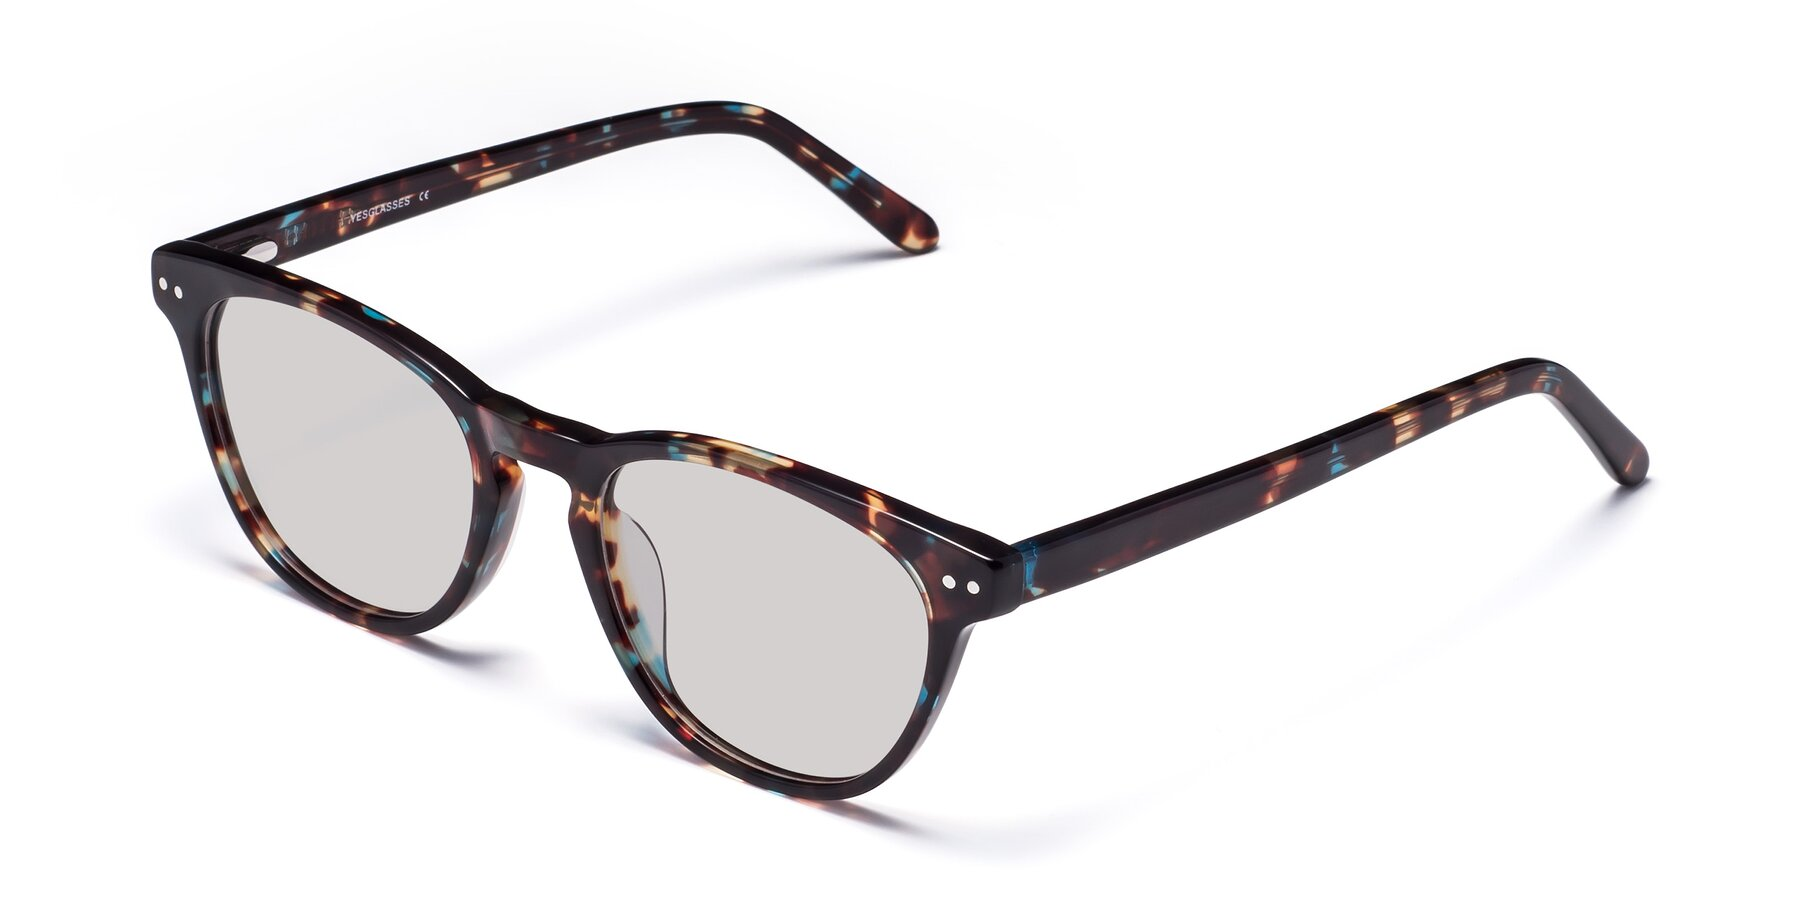 Angle of Blaze in Tortoise-Blue with Light Gray Tinted Lenses